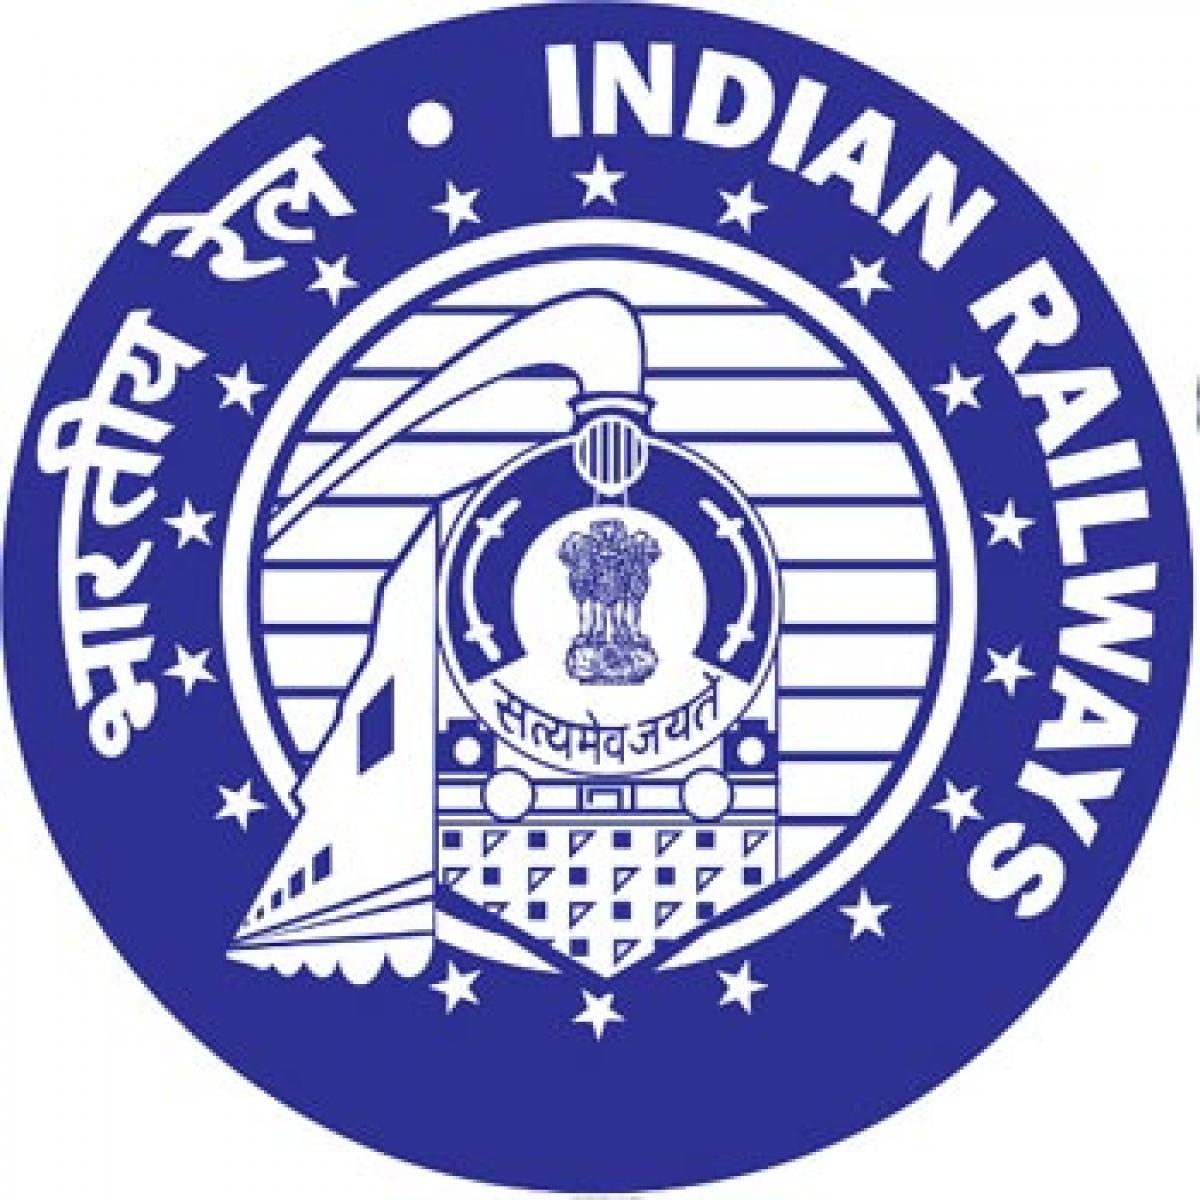 Indian Railway Catering and Tourism Corporation offers tour package to Sri Lanka